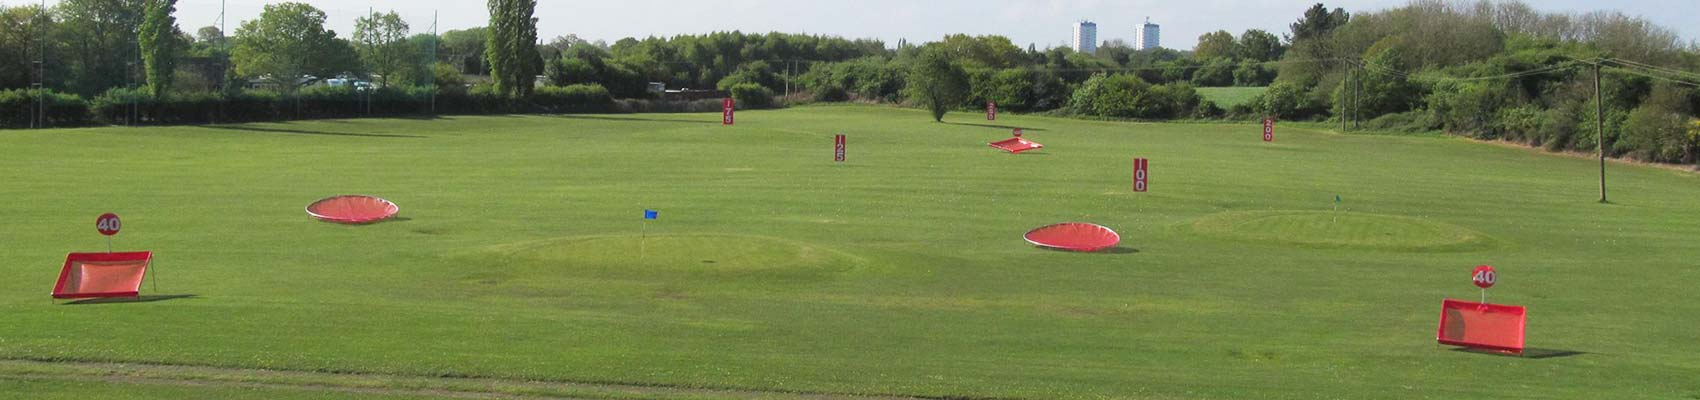 Fishley Park Outfield Targets and Distance Markers